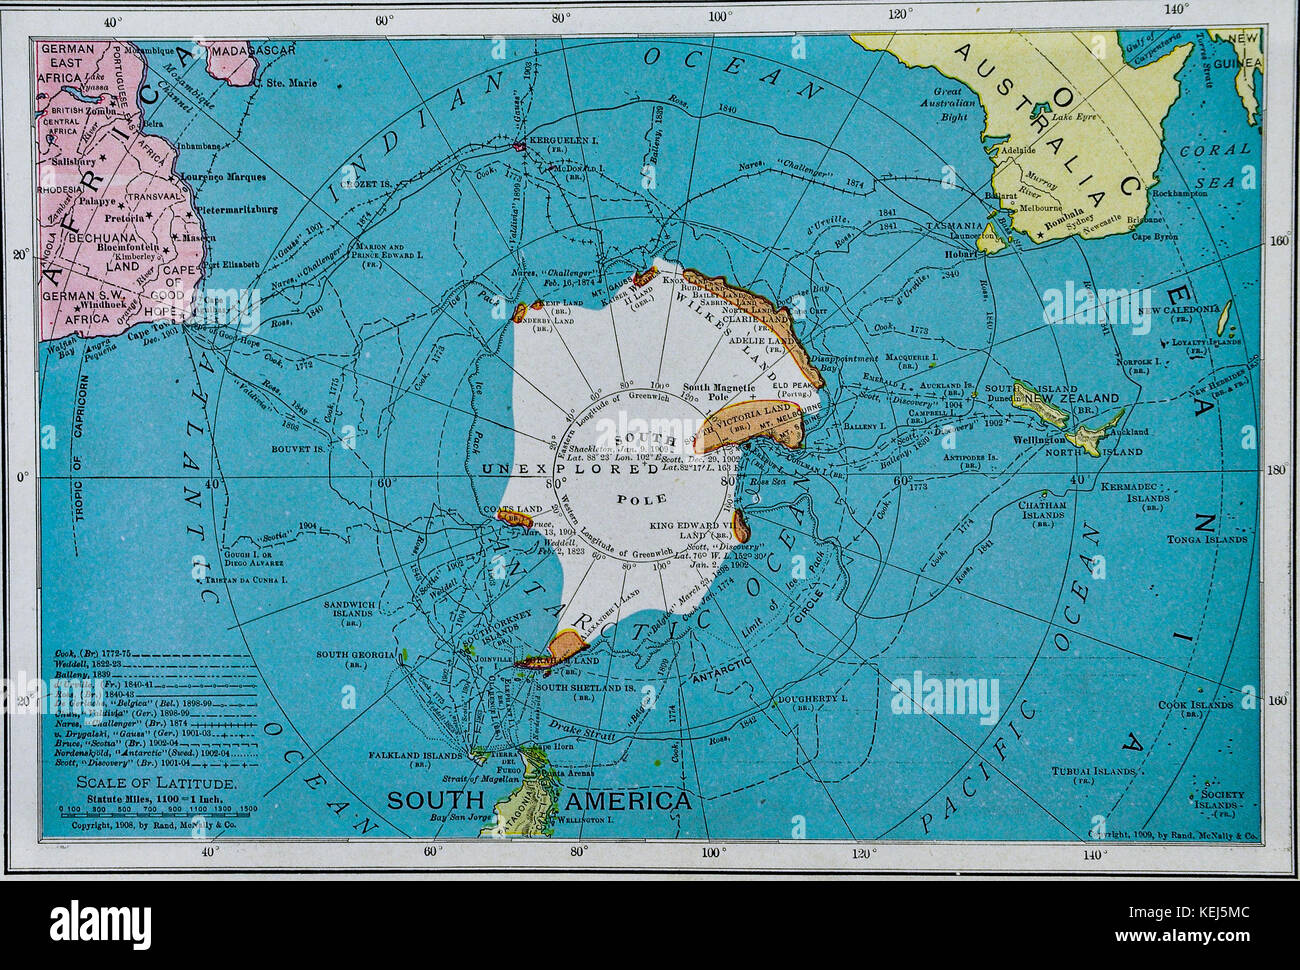 South Pole World Map.Mcnally Antique Map 1911 South Pole Antarctica Stock Photo